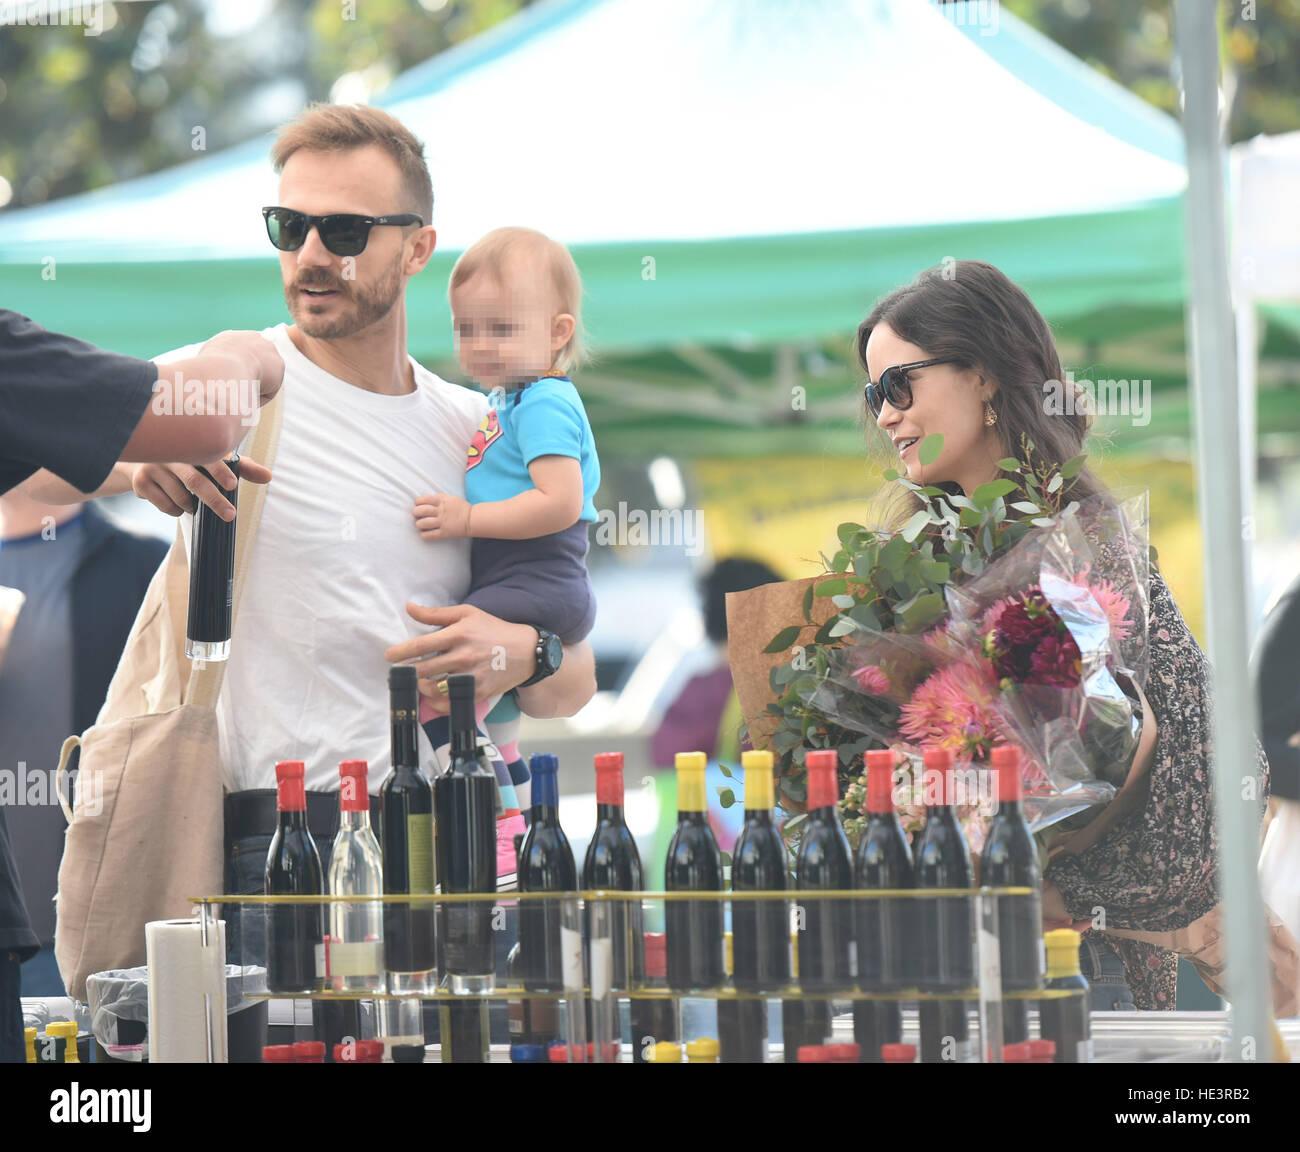 Summer Glau And Her Husband Val Morrison And Their Daughter Milena Stock Photo Alamy This site is a tribute to val, who was born in hammersmith on february 16, 1961. https www alamy com stock photo summer glau and her husband val morrison and their daughter milena 129161958 html